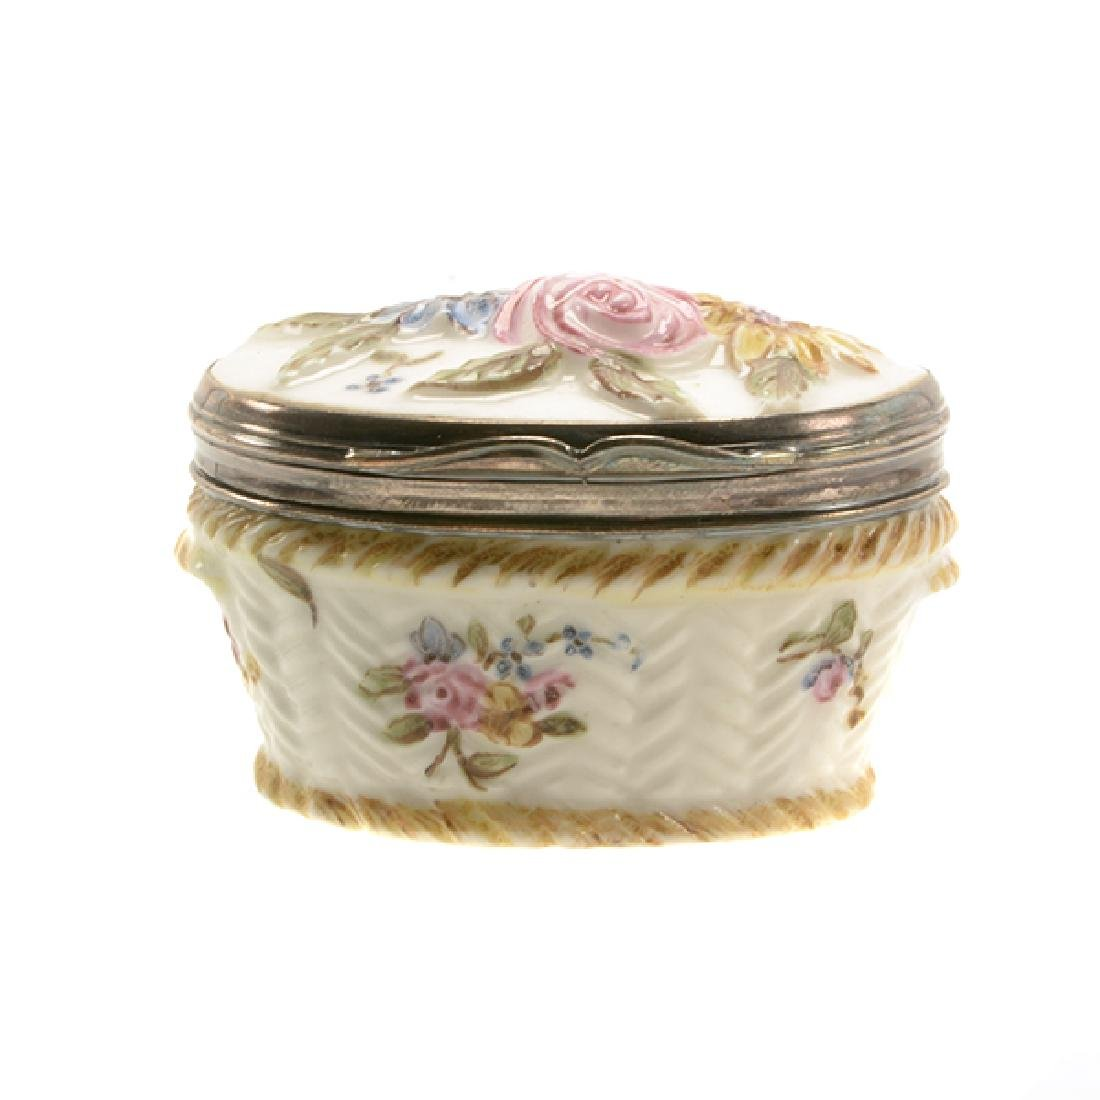 French Mennecy Silver Mounted Porcelain Snuff Box - 7